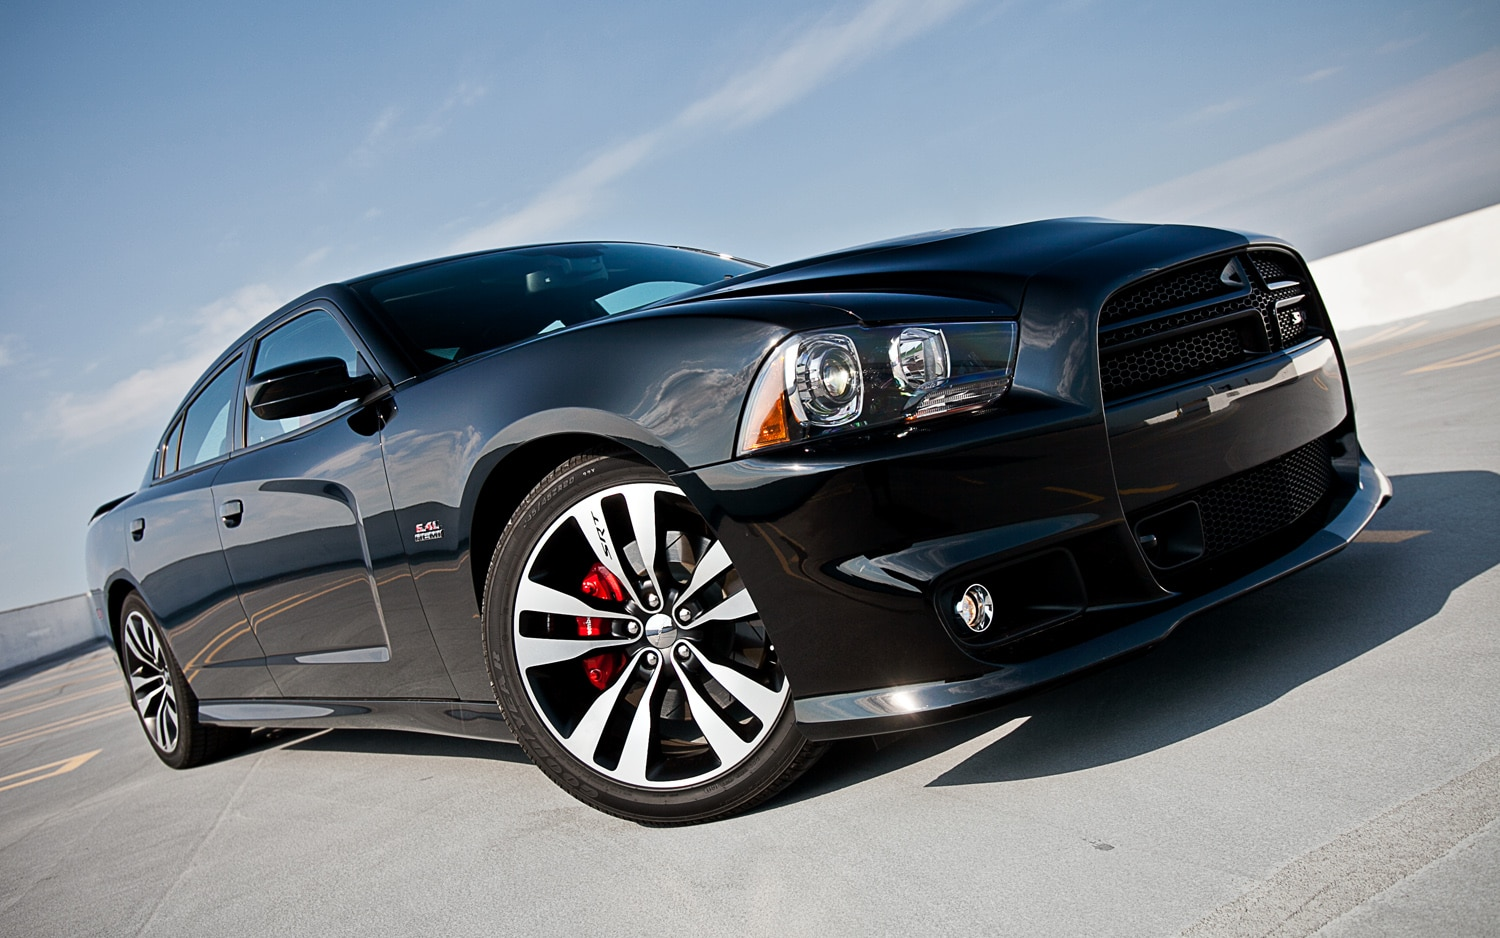 2012 Dodge Charger SRT8 Front Right View 21